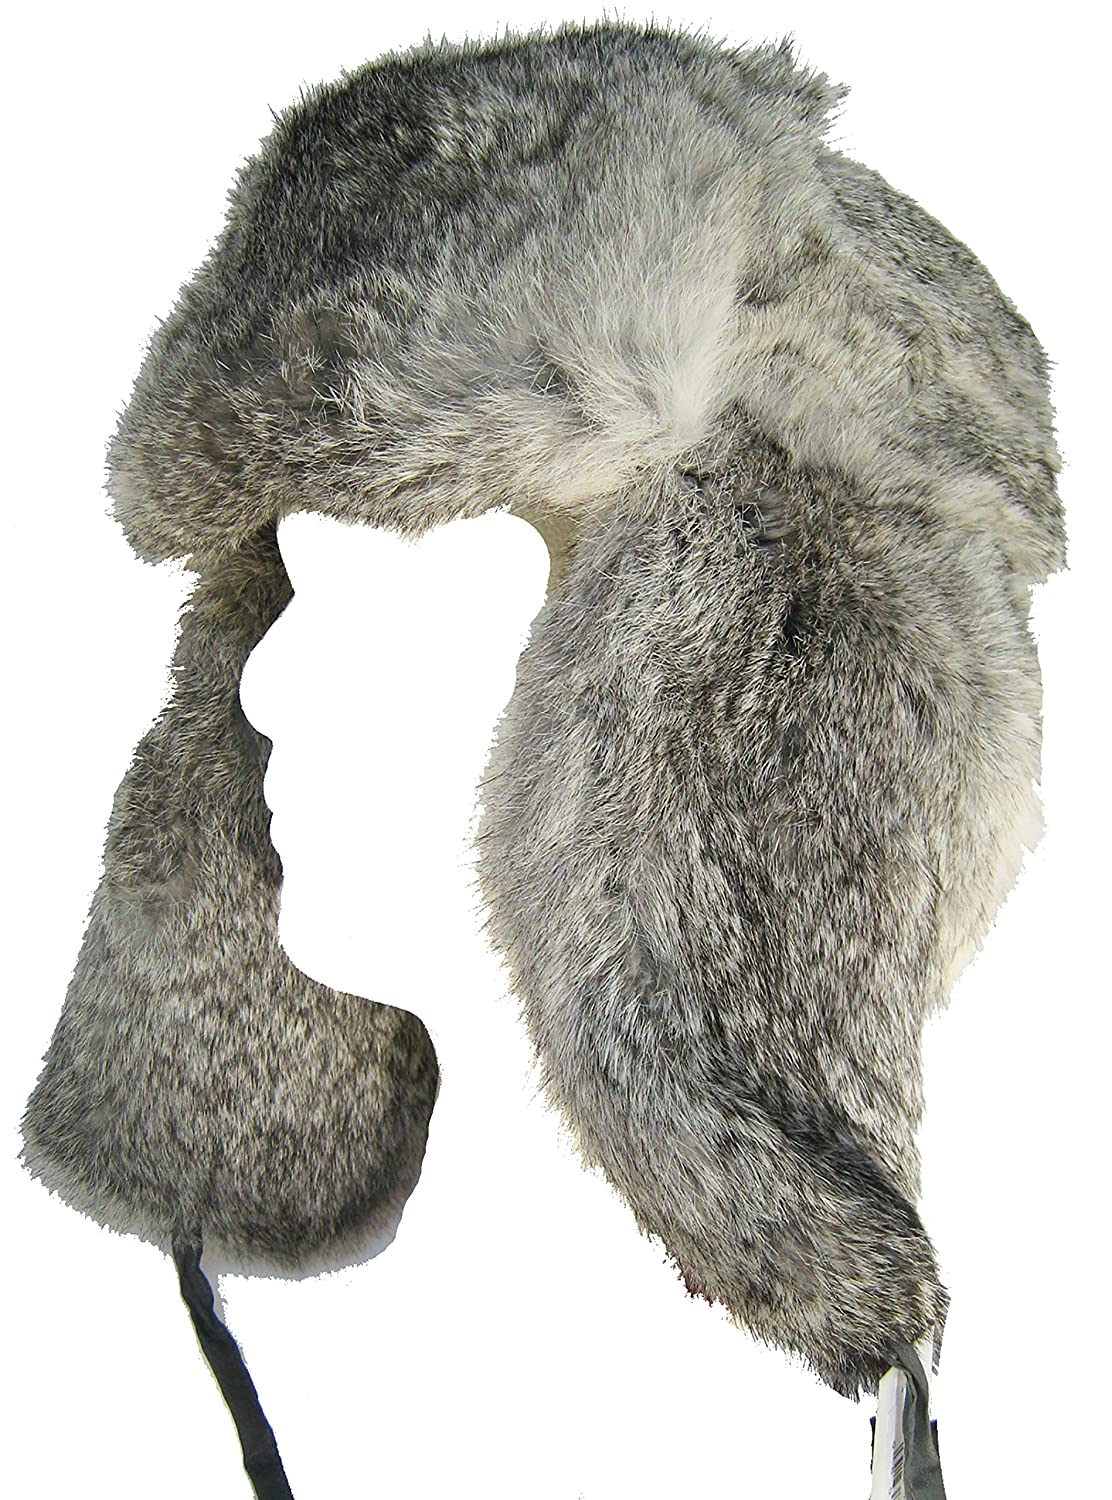 Klondike Sterling Russian Rabbit Fur Trooper Hat Ear Flaps Grey 9H6621 Trapper